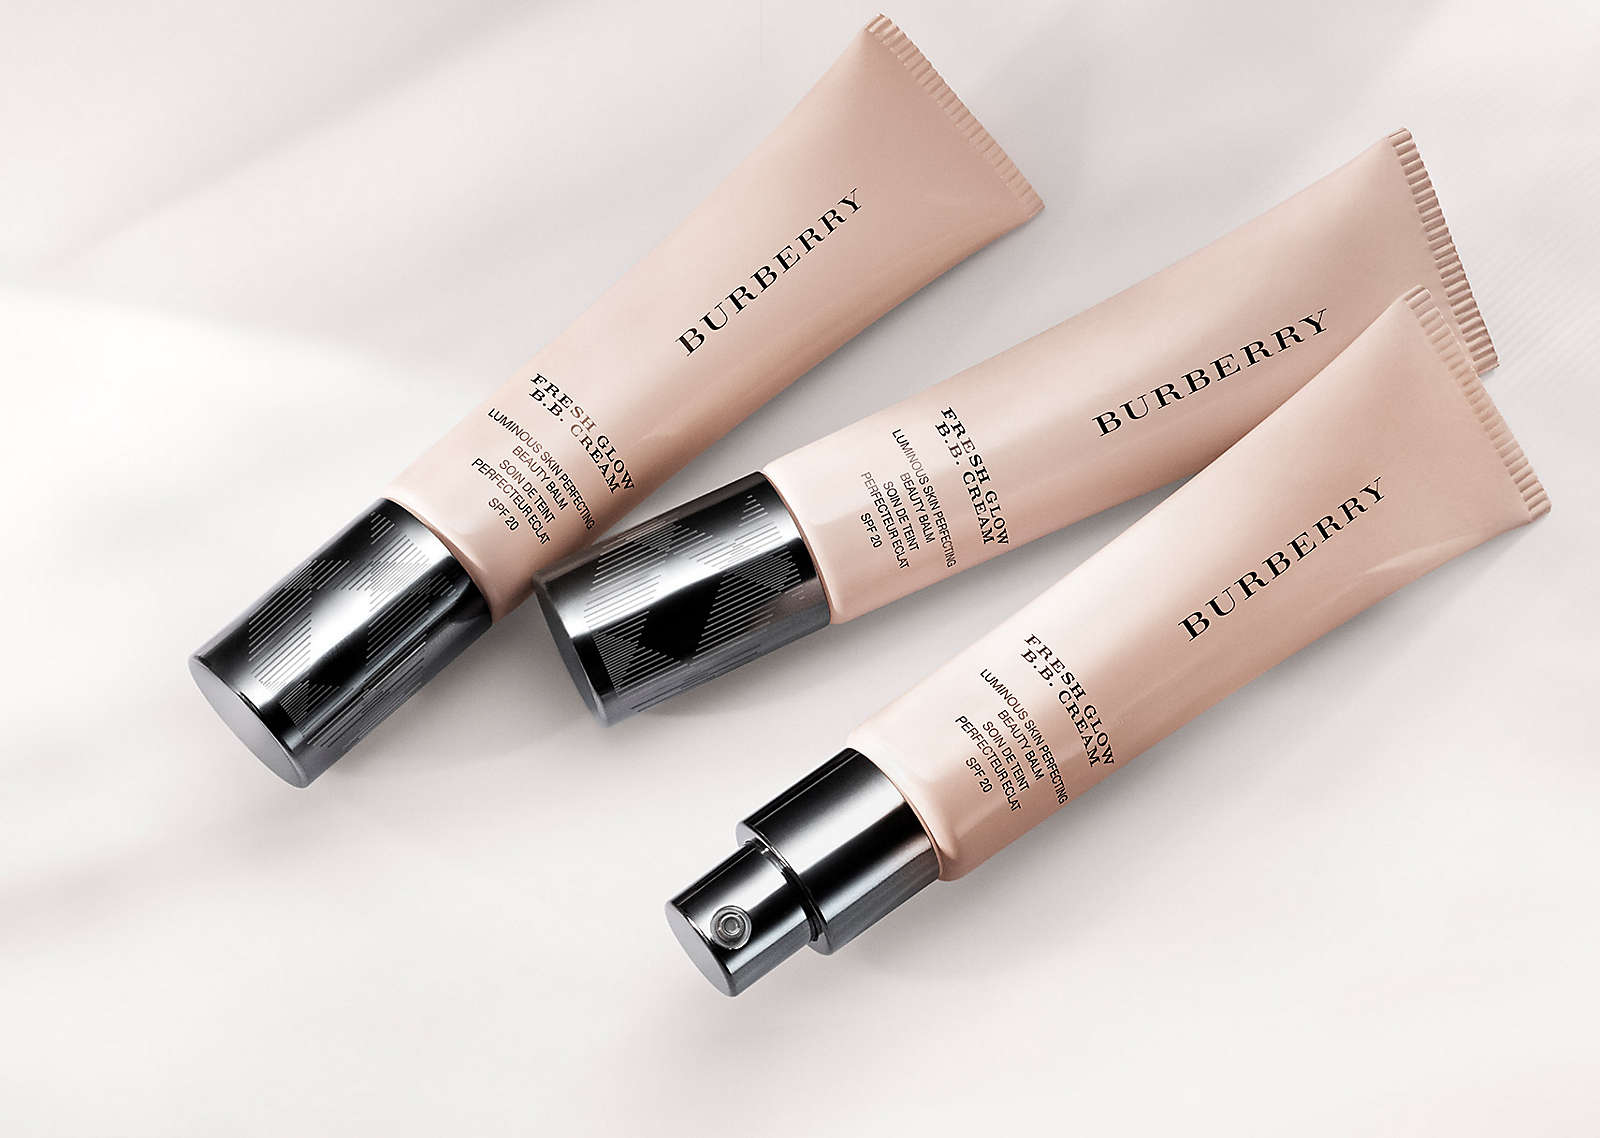 burberry-new-fresh-glow-bb-cream